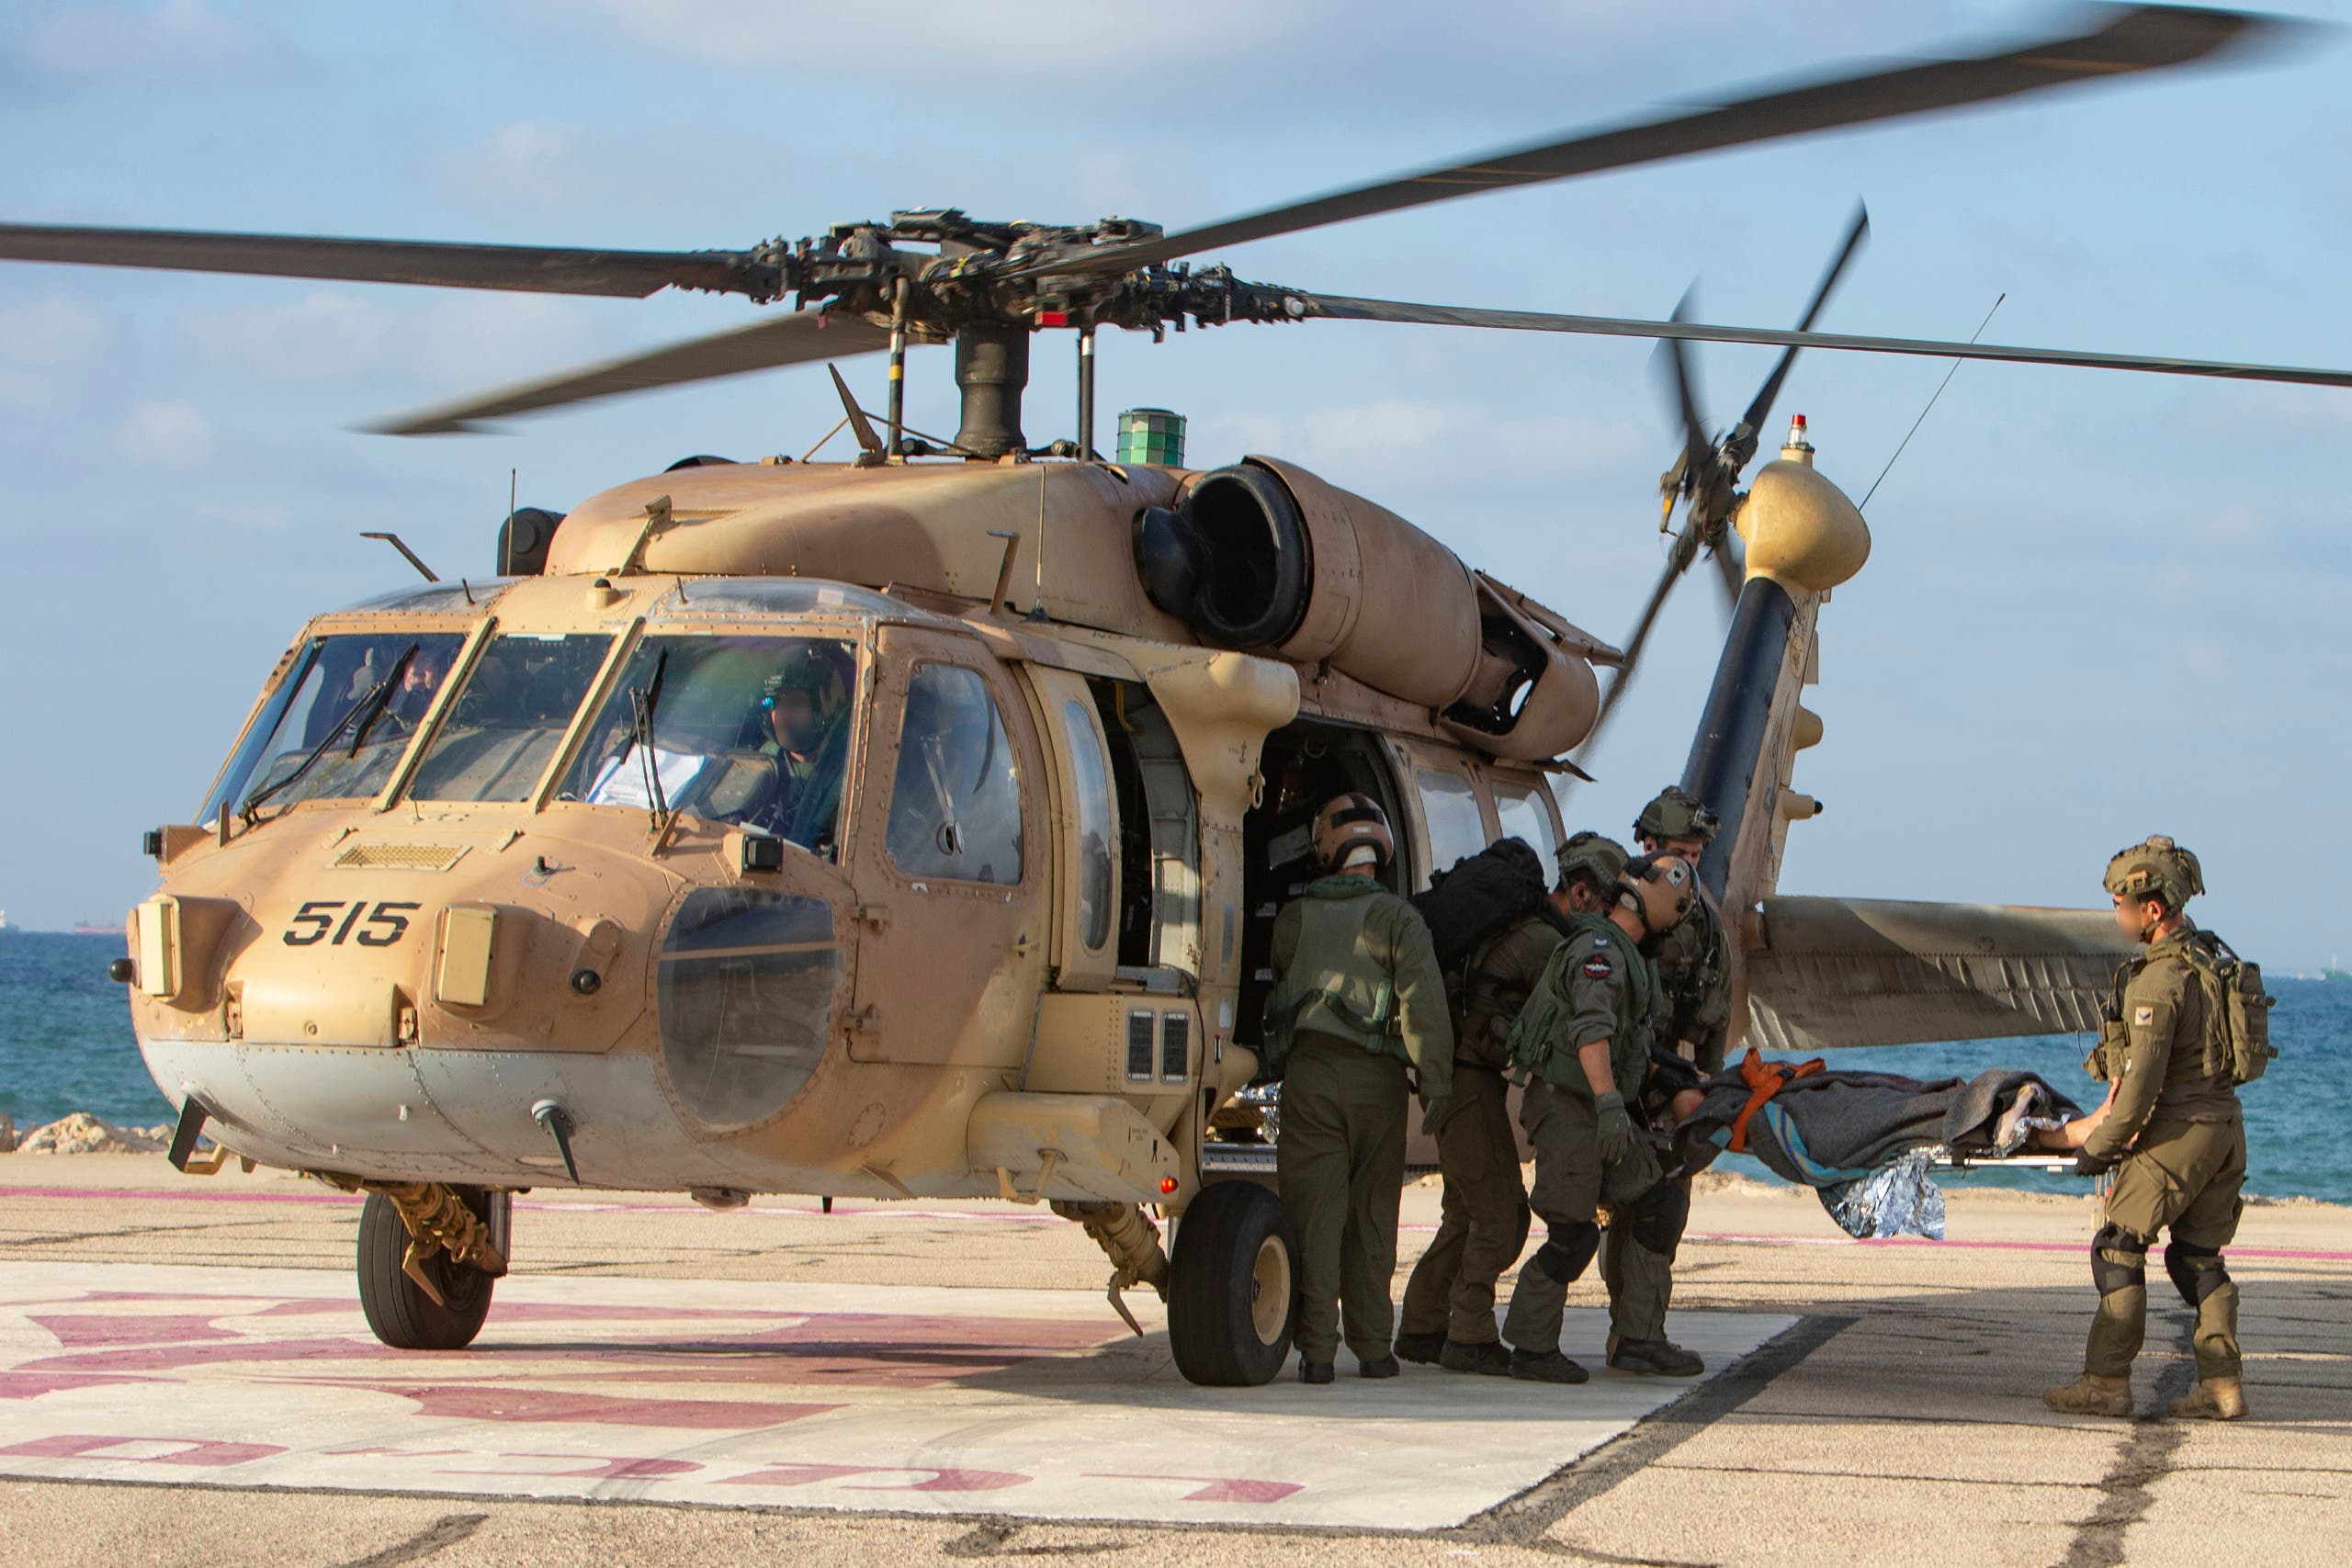 Israeli paramedics and soldiers evacuate a mock wounded comrade at a helipad in Ramban hospital in the Mediterranean city of Haifa on September 1, 2019 as part of a deception operation of the Israeli army in order to mislead the leadership of Lebanese Hezbollah. (File photo: AP)